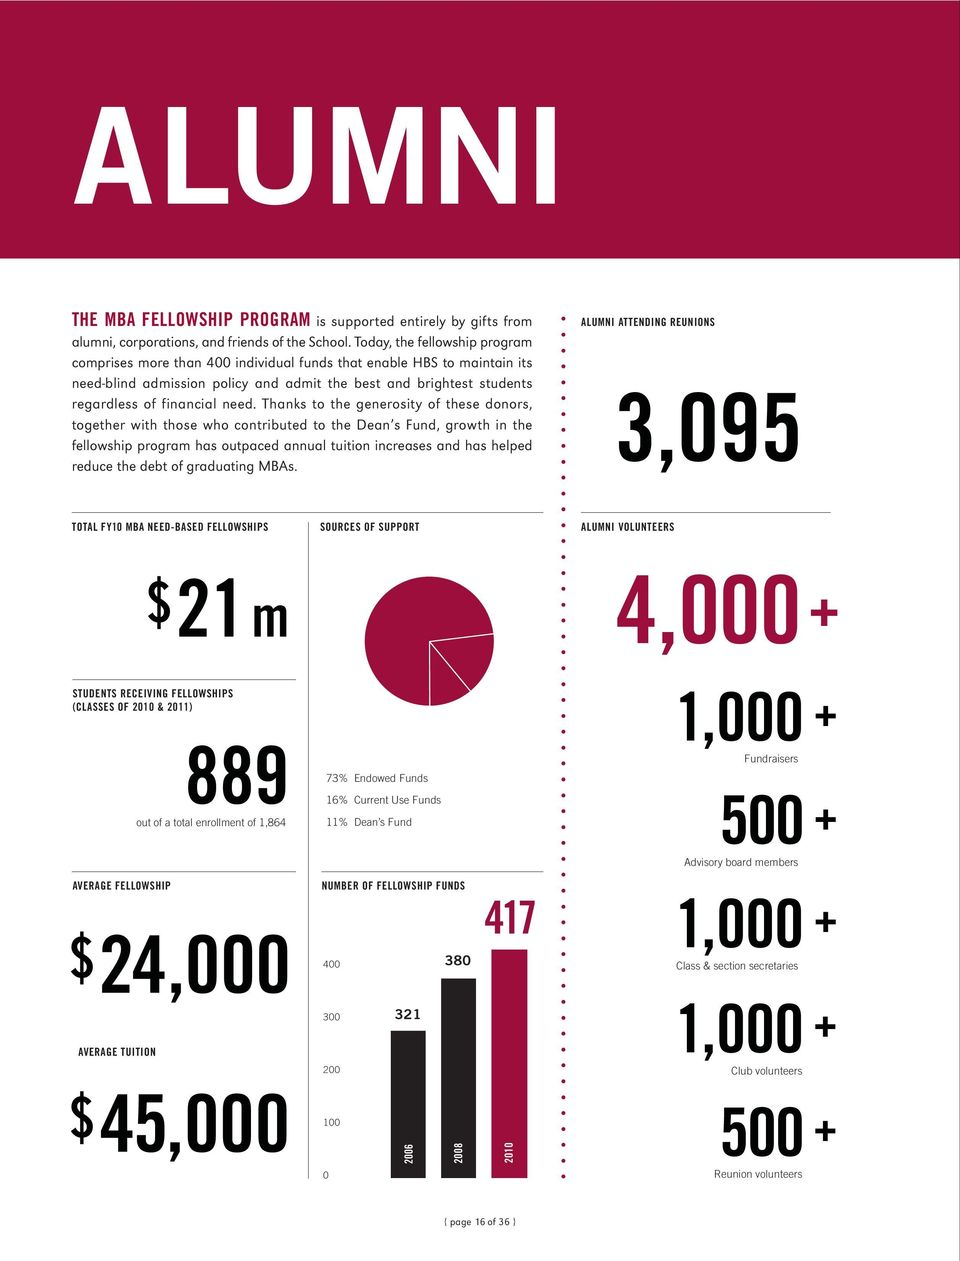 need. Thanks to the generosity of these donors, together with those who contributed to the Dean s Fund, growth in the fellowship program has outpaced annual tuition increases and has helped reduce